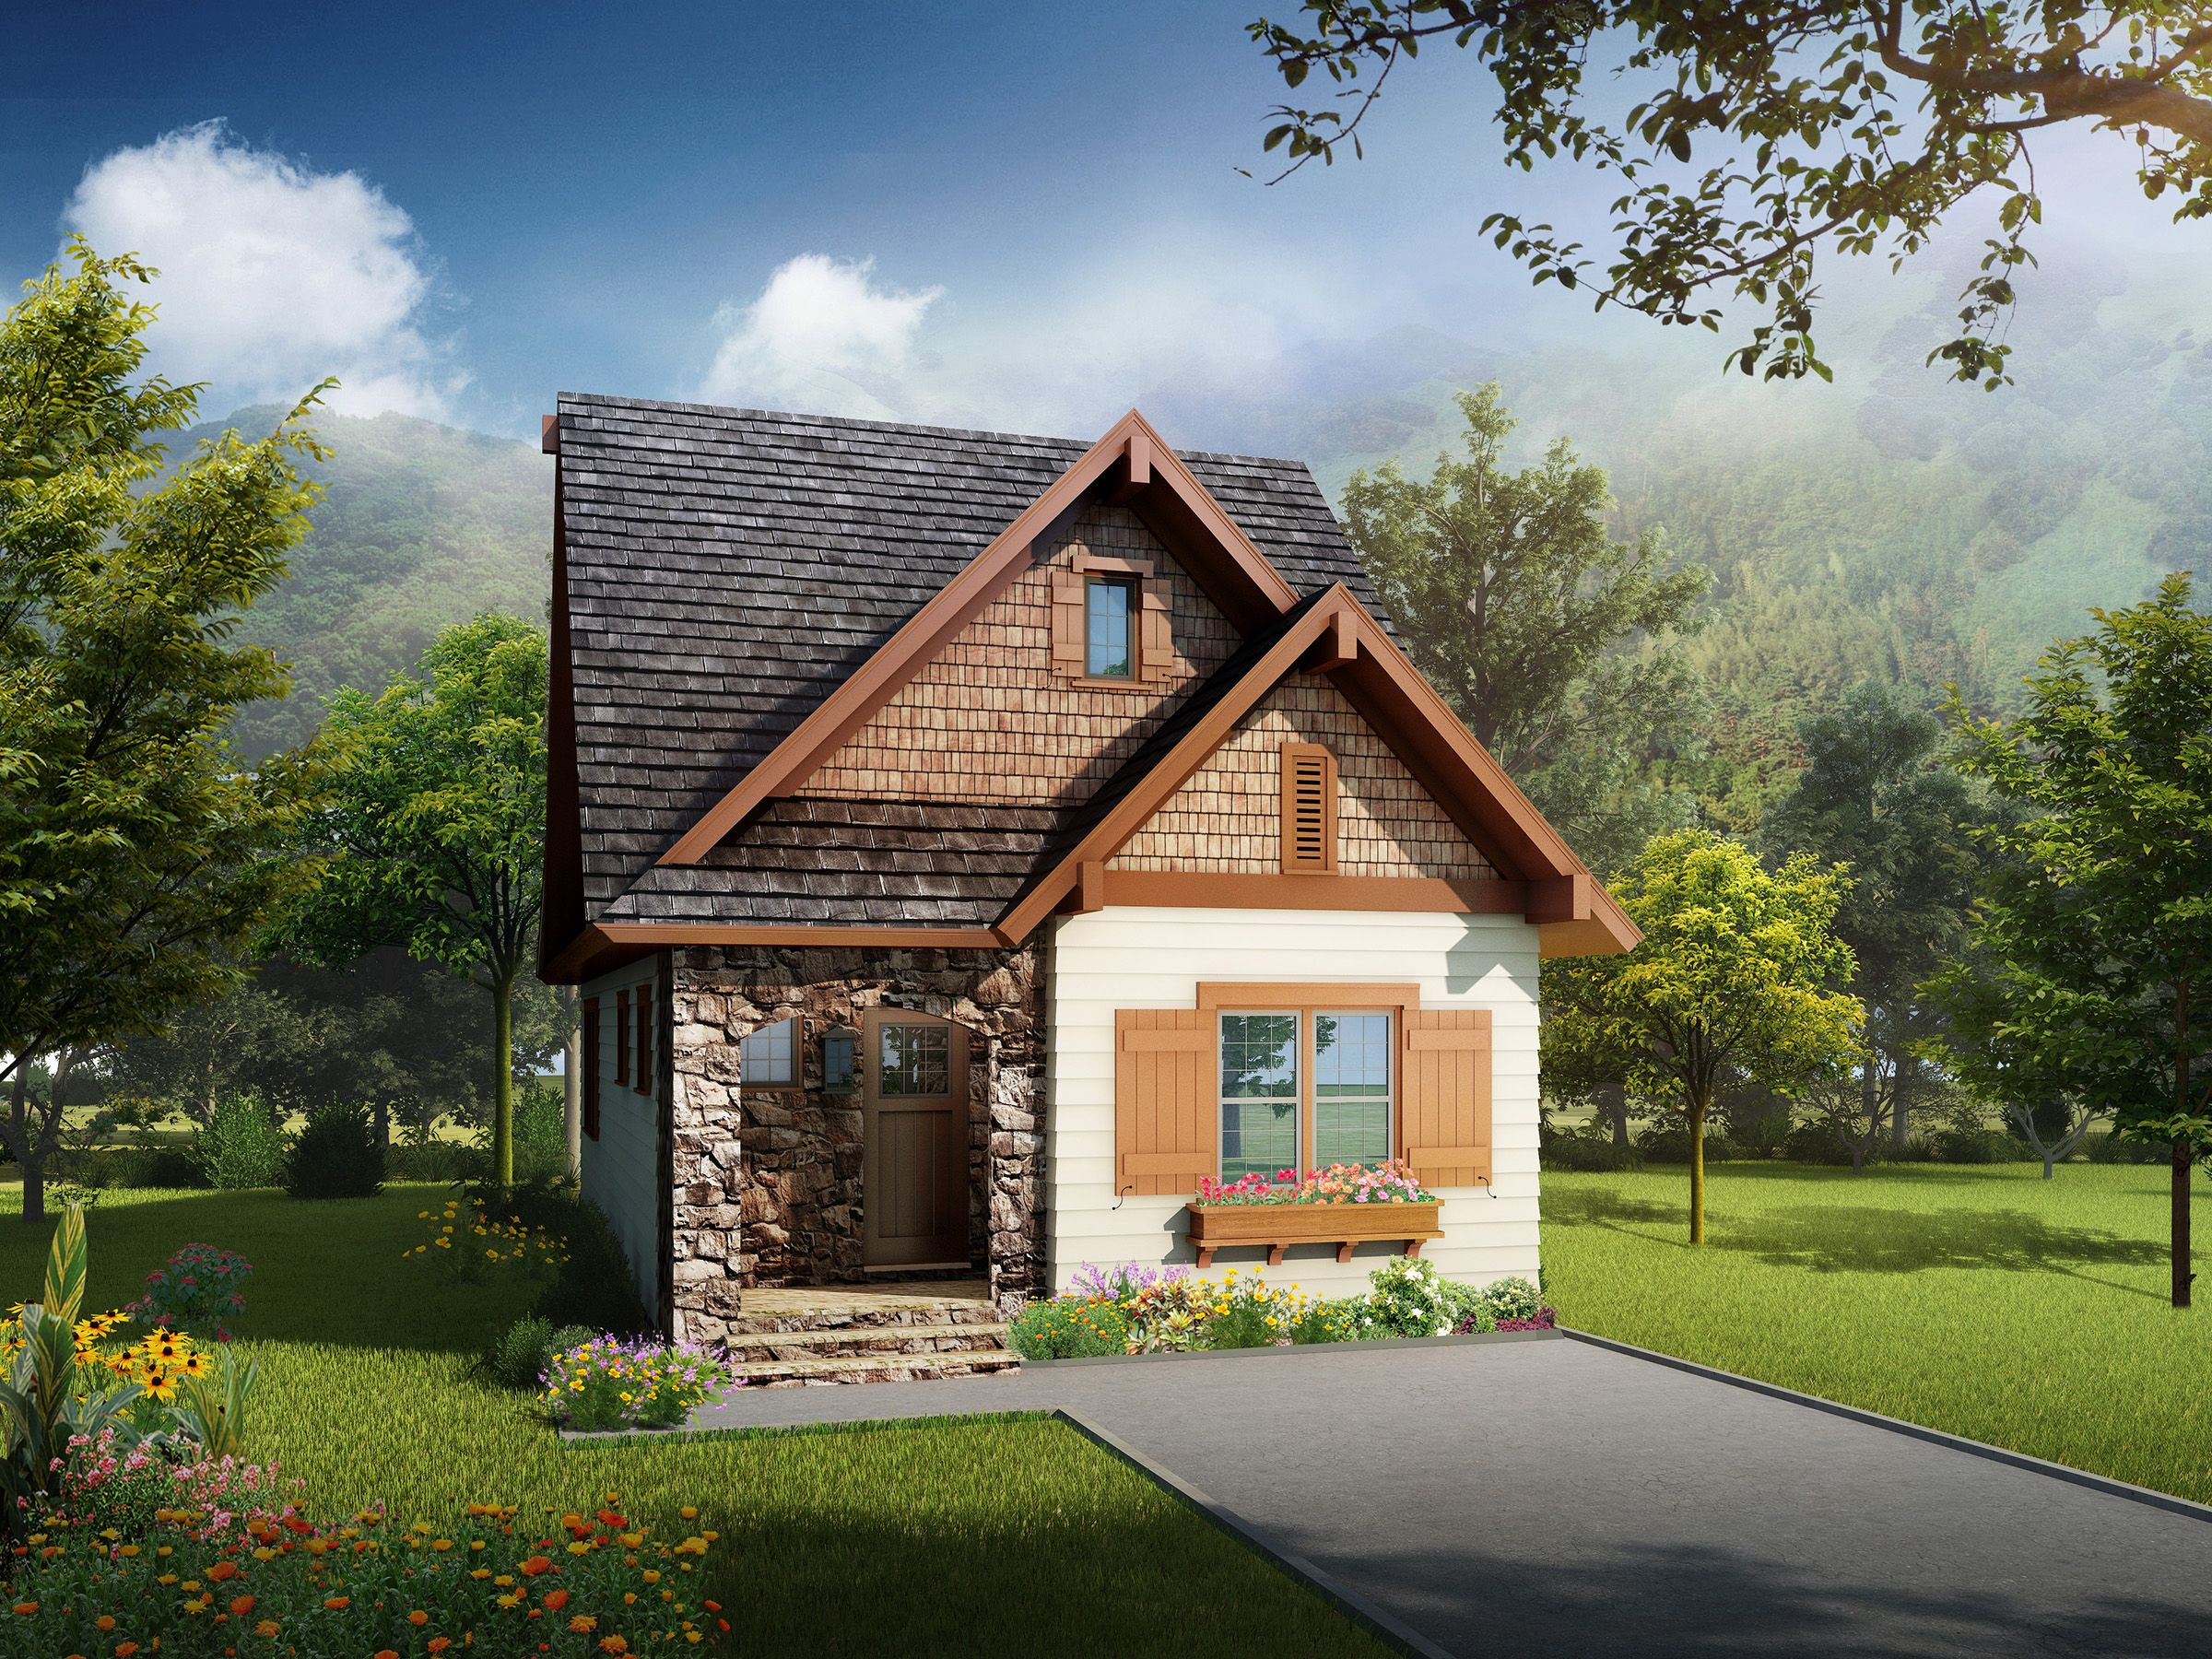 Plan 17807LV Rustic Craftsman Cottage Plan 17807LV